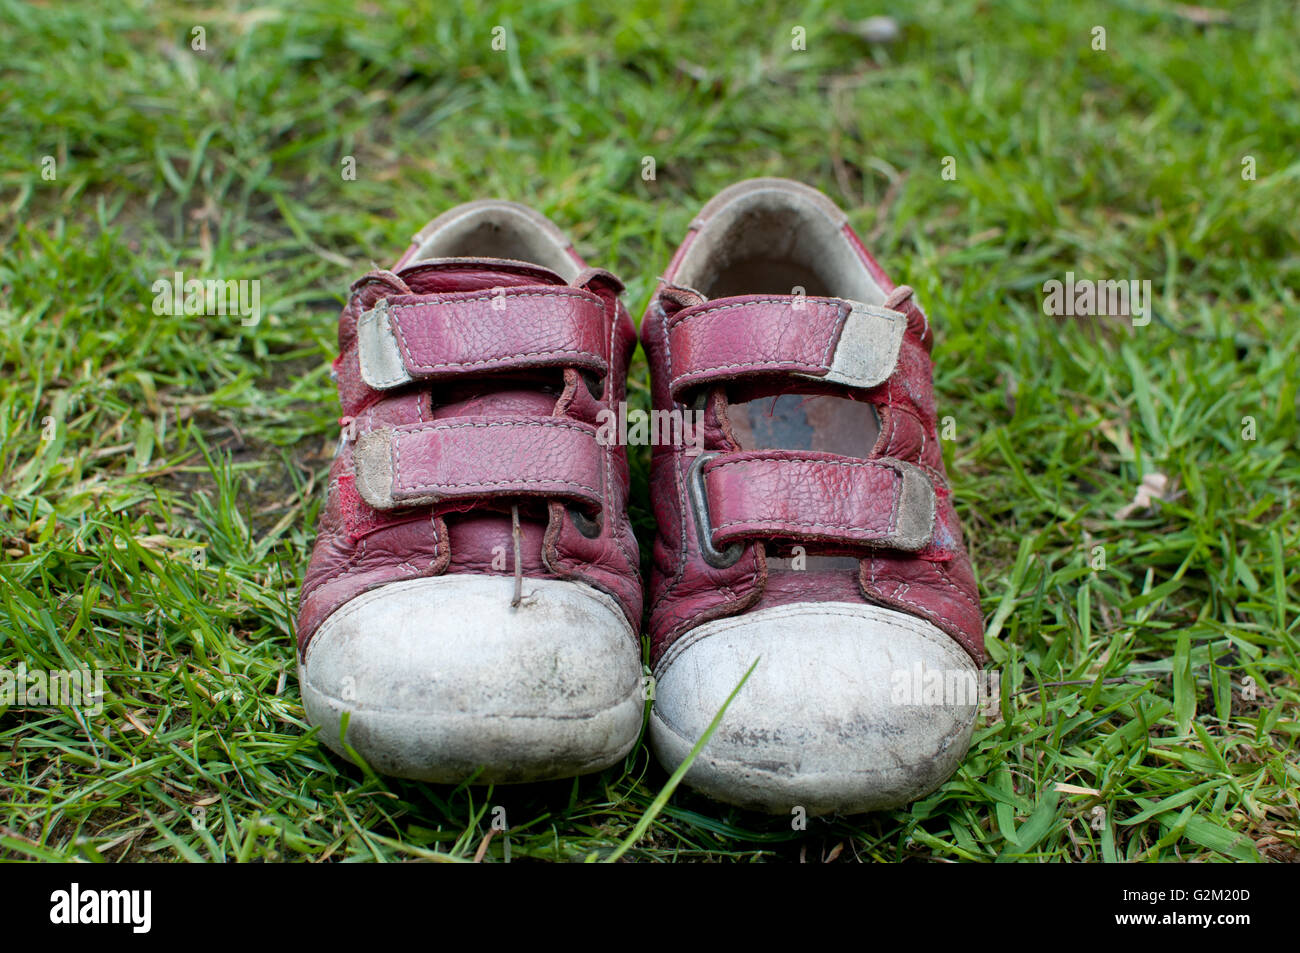 children's shoes on grass - Stock Image